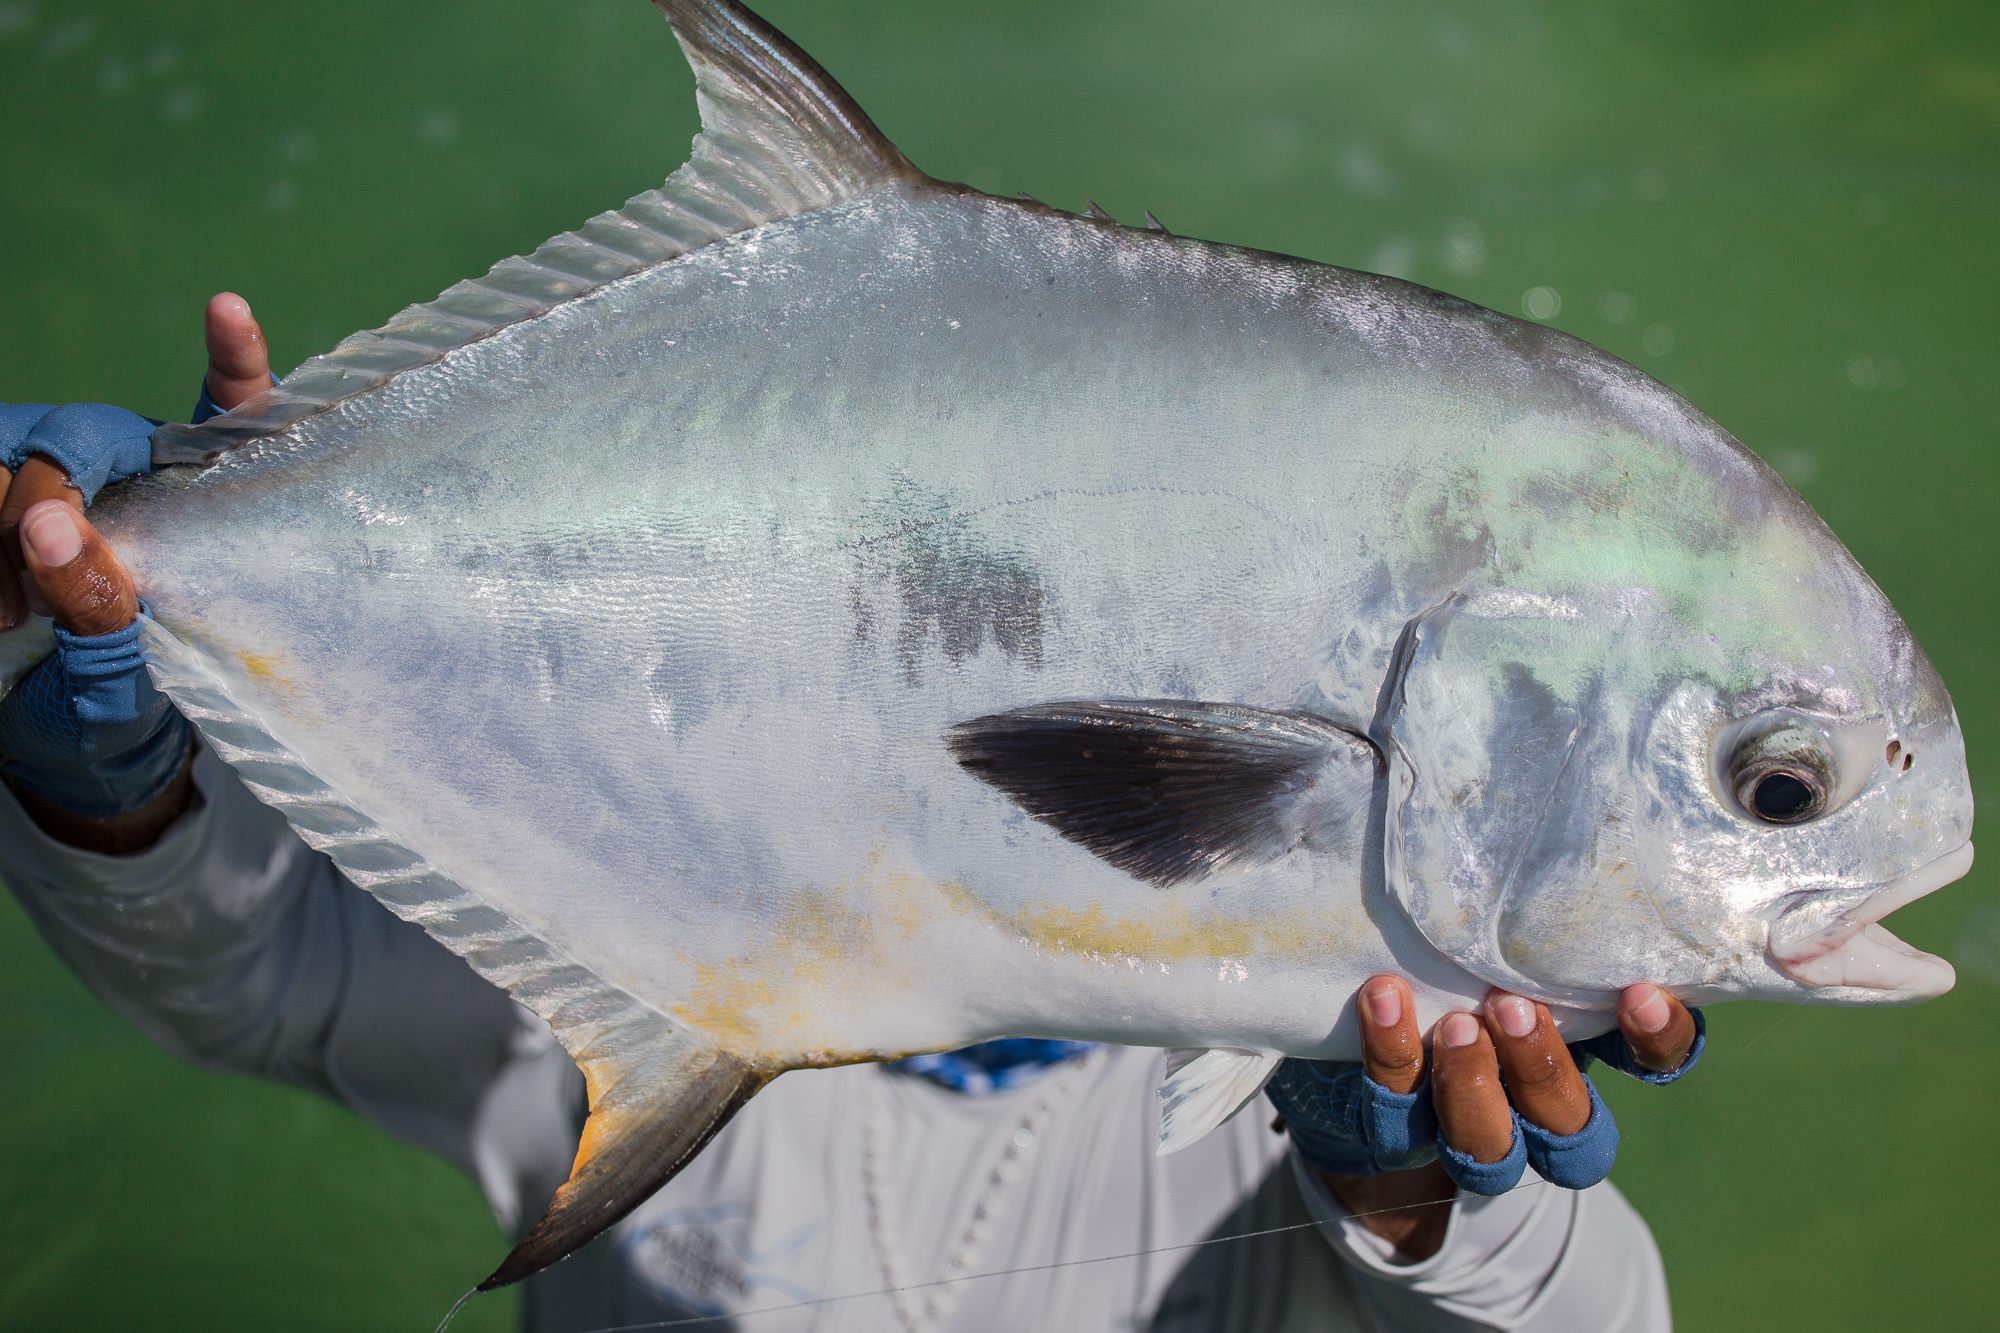 (3/3) Every permit is celebrated, but this one perhaps more so. After a week of tough weather and morning encounter that saw a securely hooked permit broken off by a certain over-zealous angler, the cradling and hoisting of this fine specimen brings a collective sense of elation to both guides and anglers. (photo: Chad Shmukler)